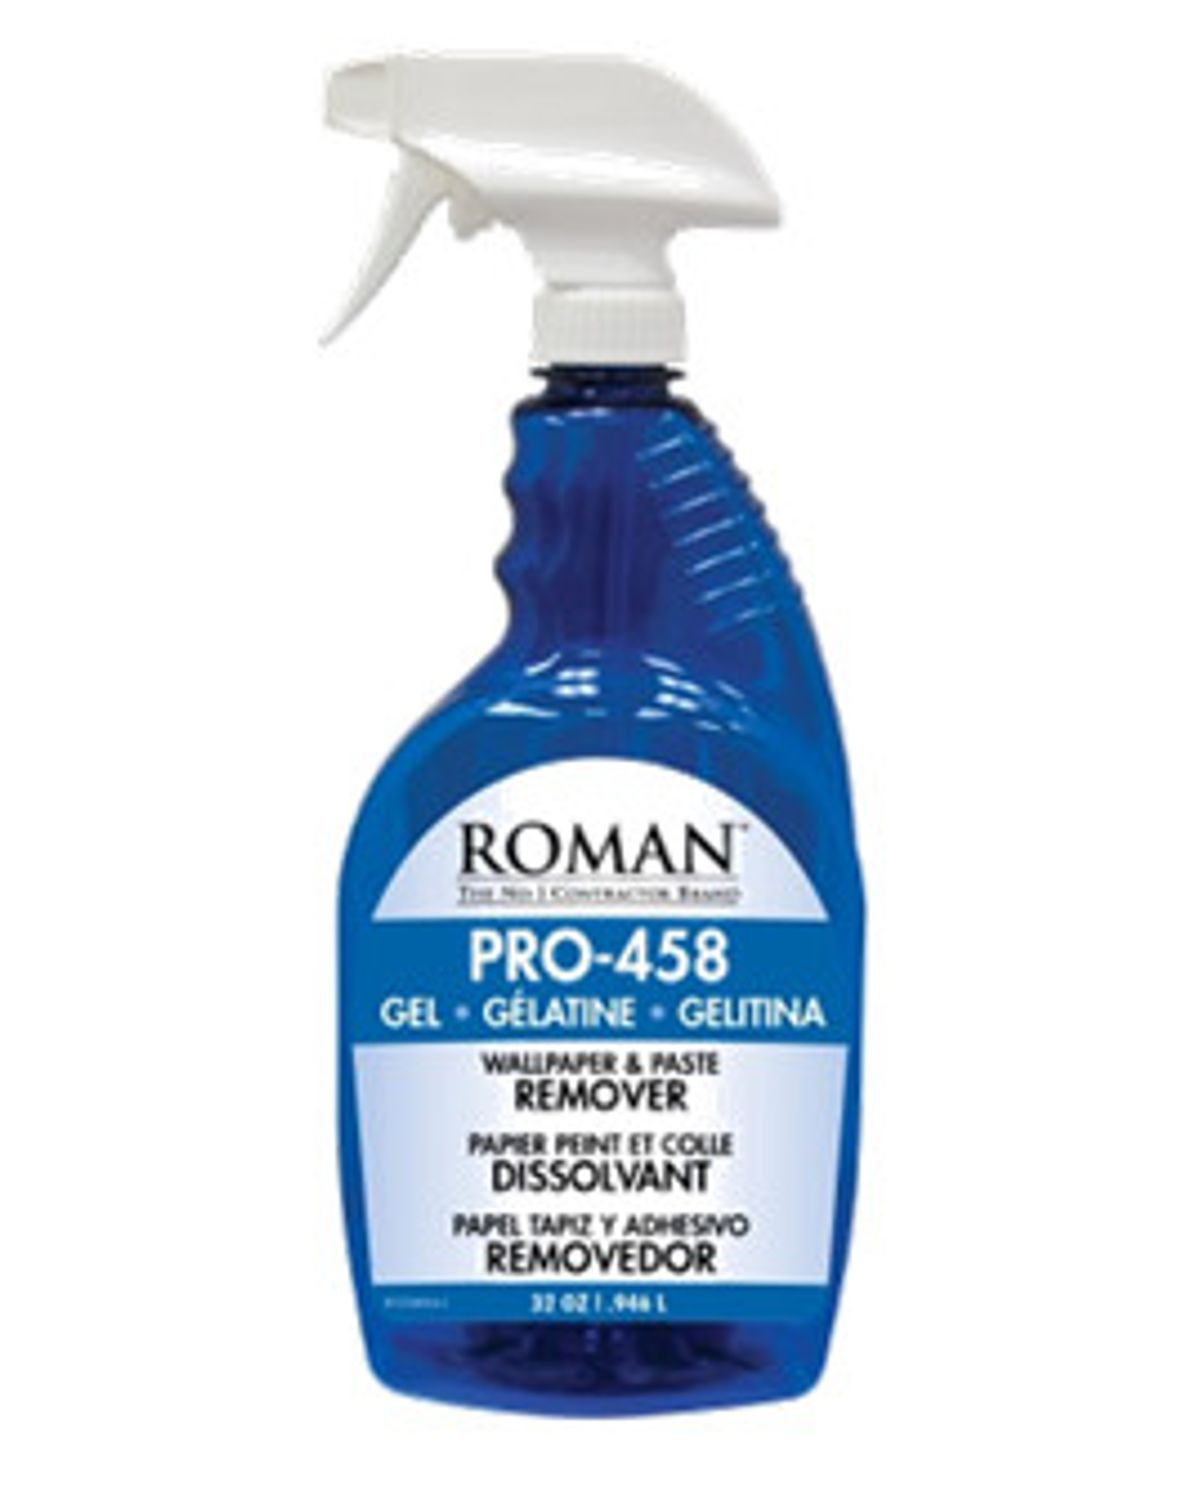 Roman Pro 458 Wallpaper And Paste Remover Gel Spray Sherwinwilliams